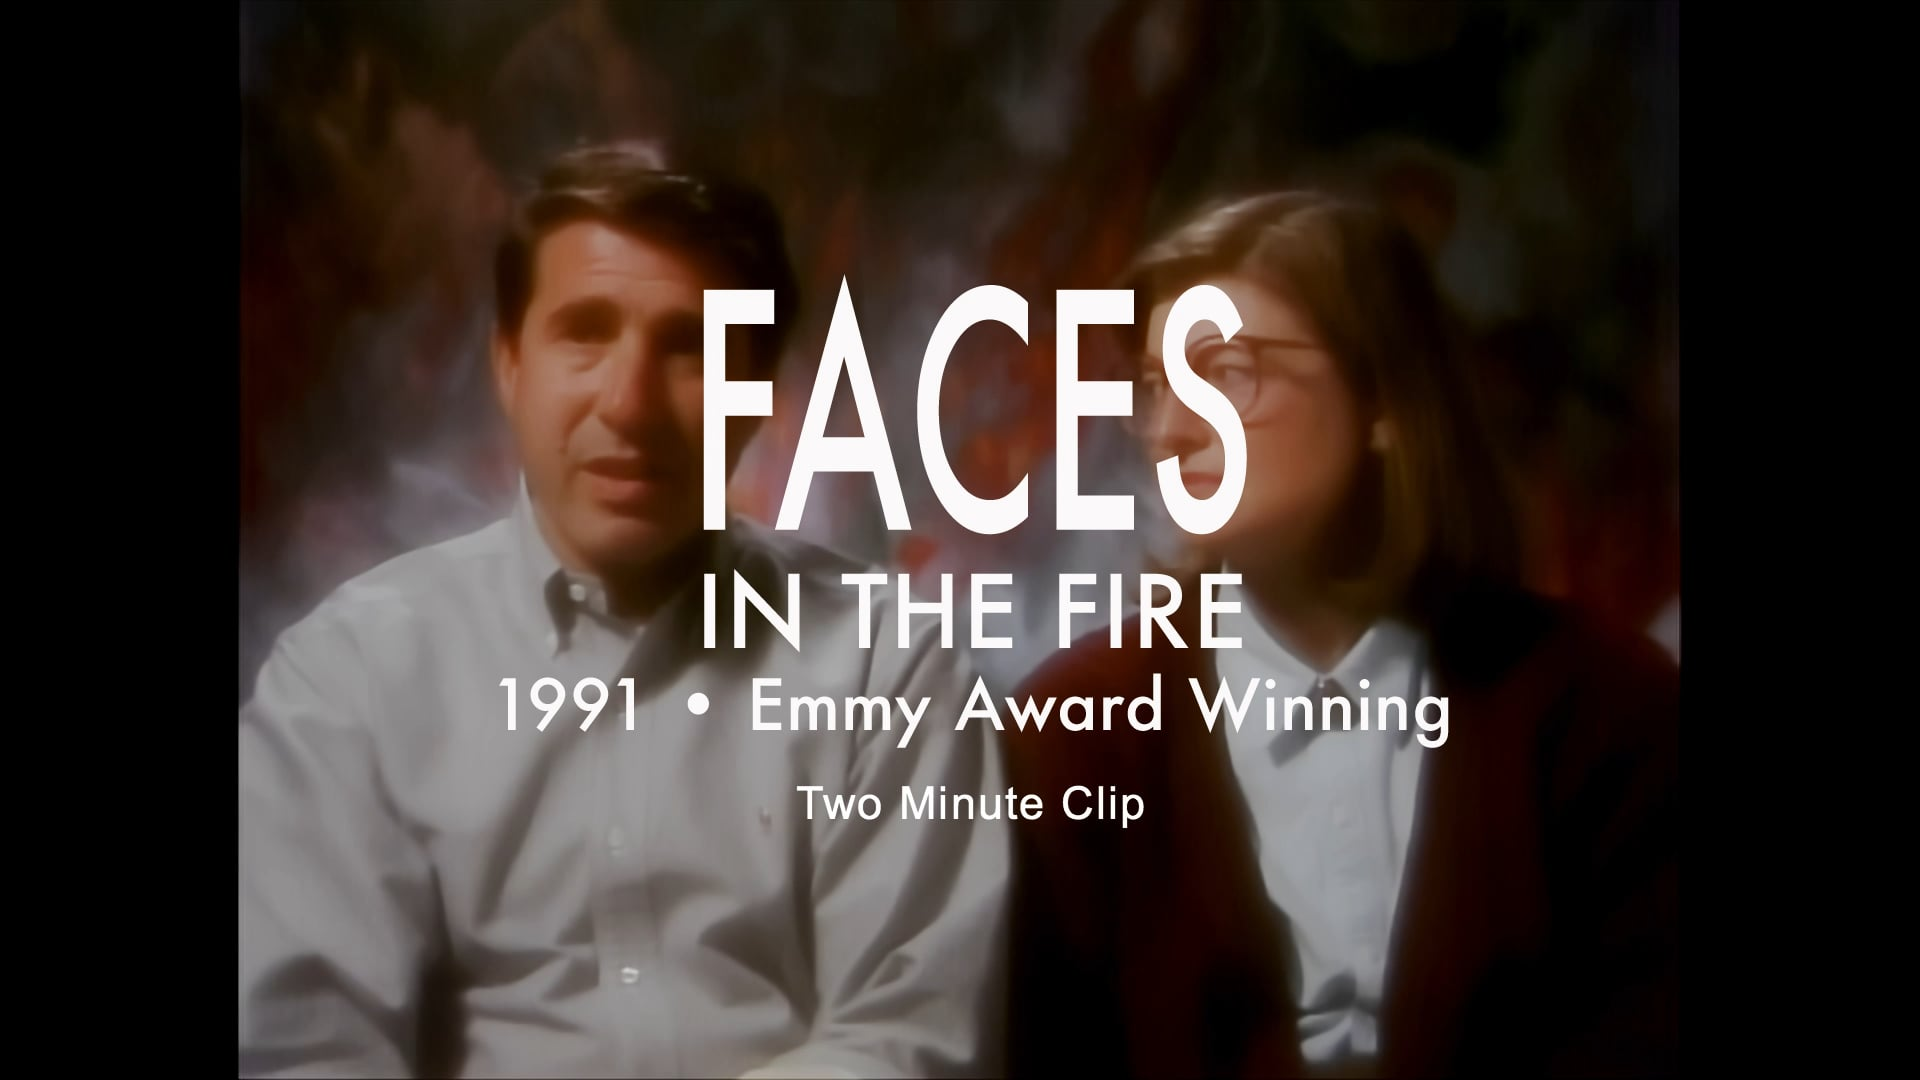 Faces in the Fire ➤ Trailer